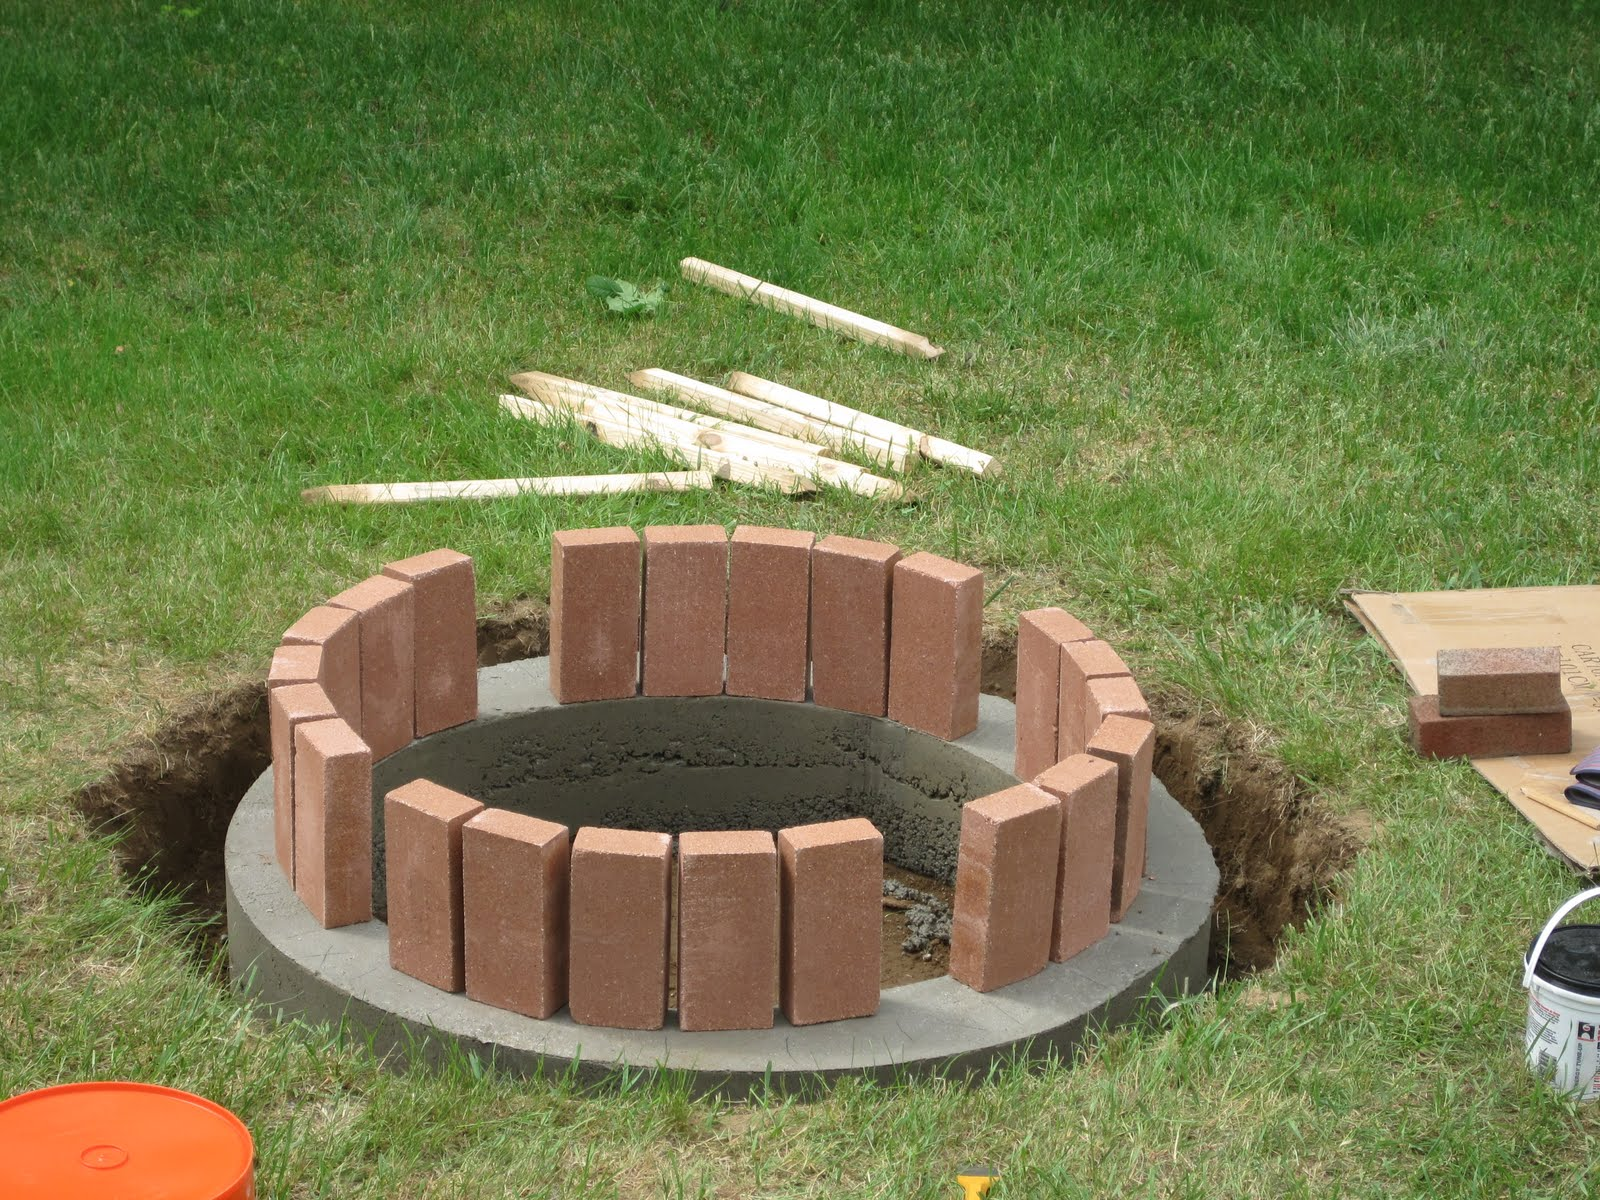 How To Plan For Building A Fire Pit: Some Brilliant Brick Fire Pit Ideas For Your Home